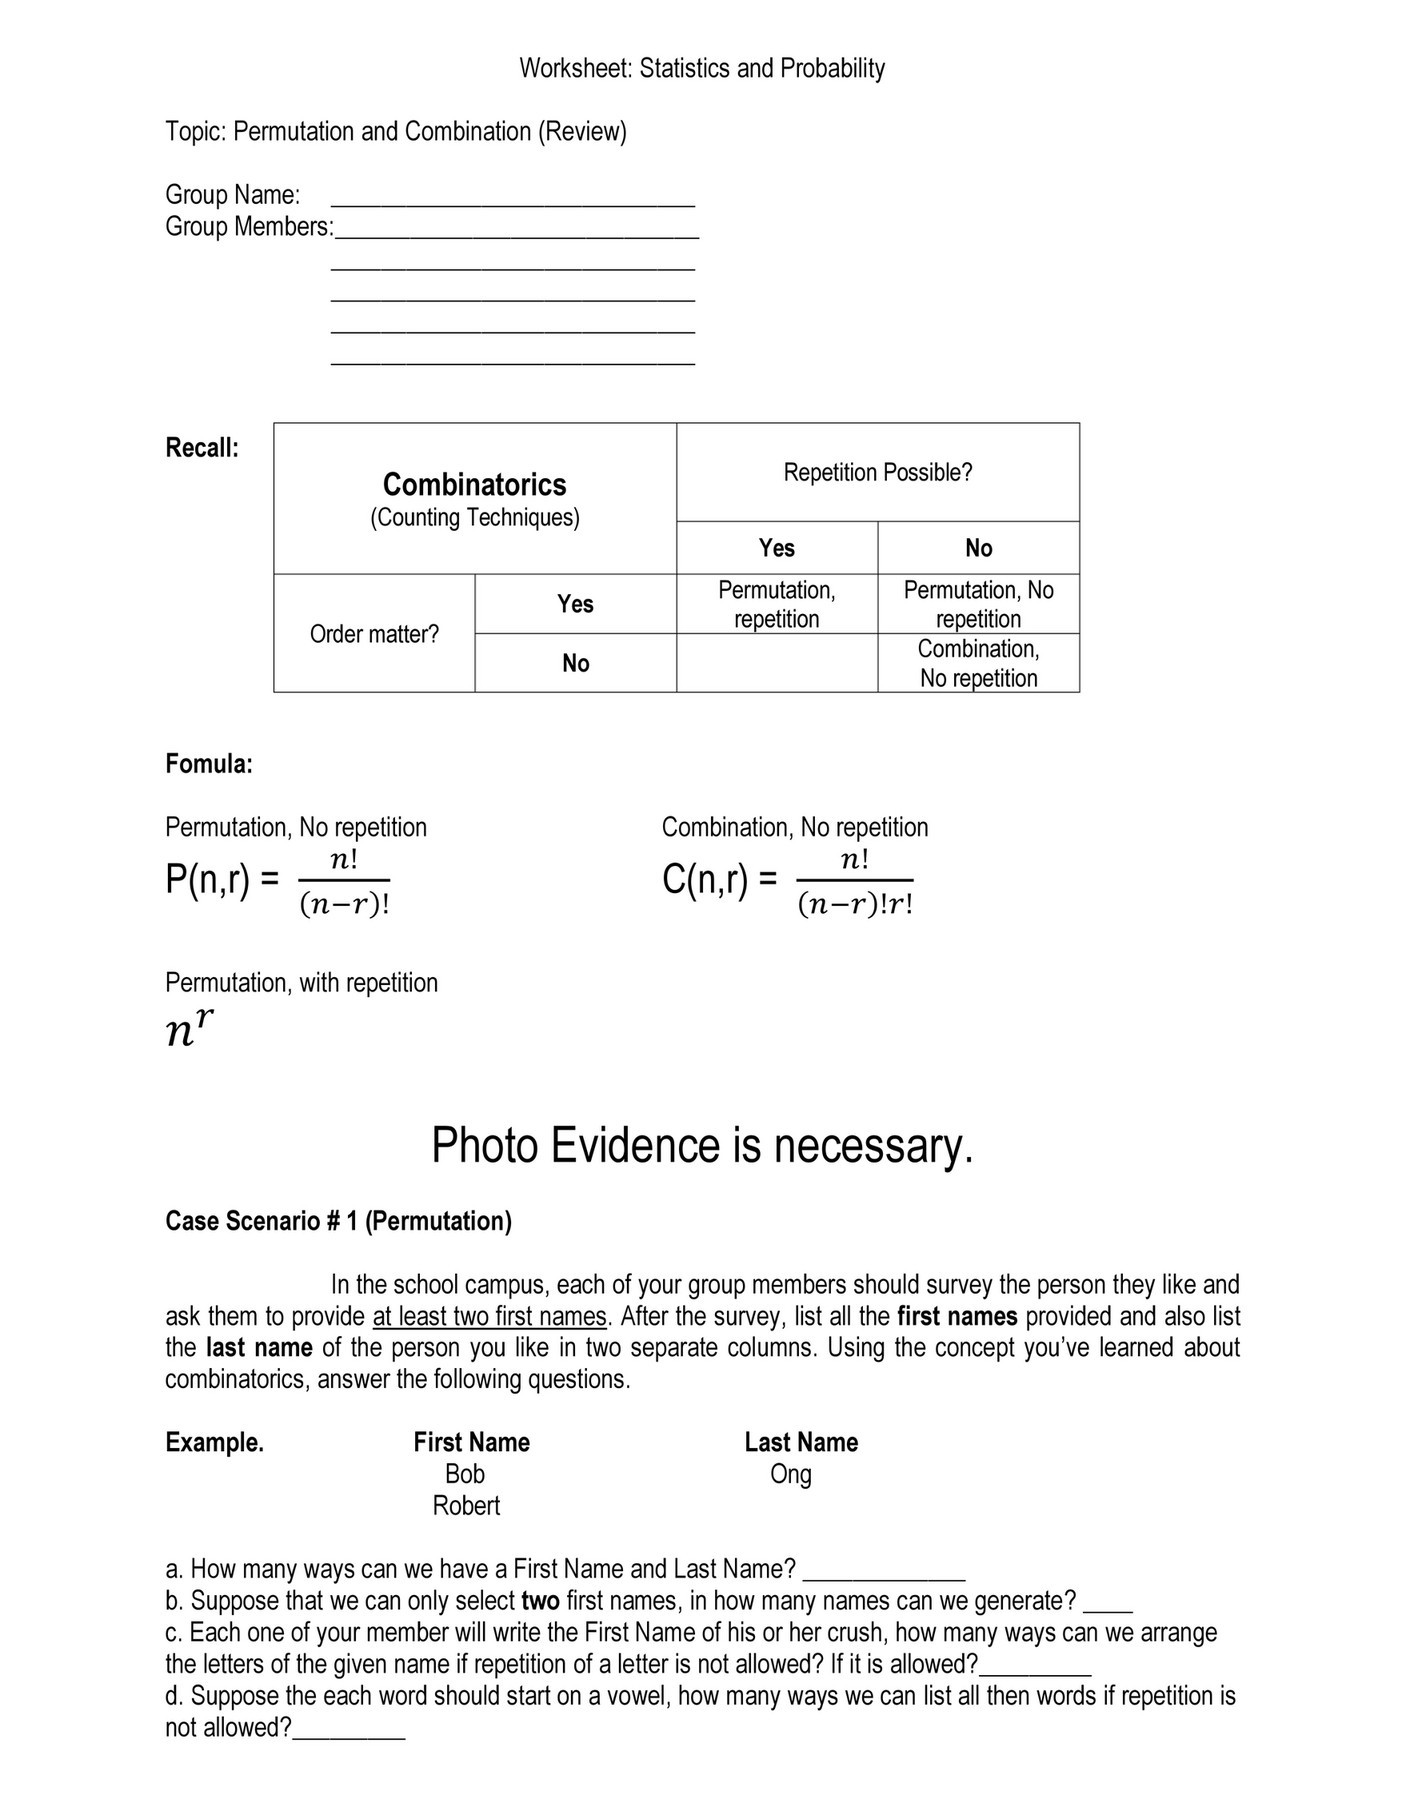 Combinations and Permutations Worksheet My Publications Permutation and Bination Page 1